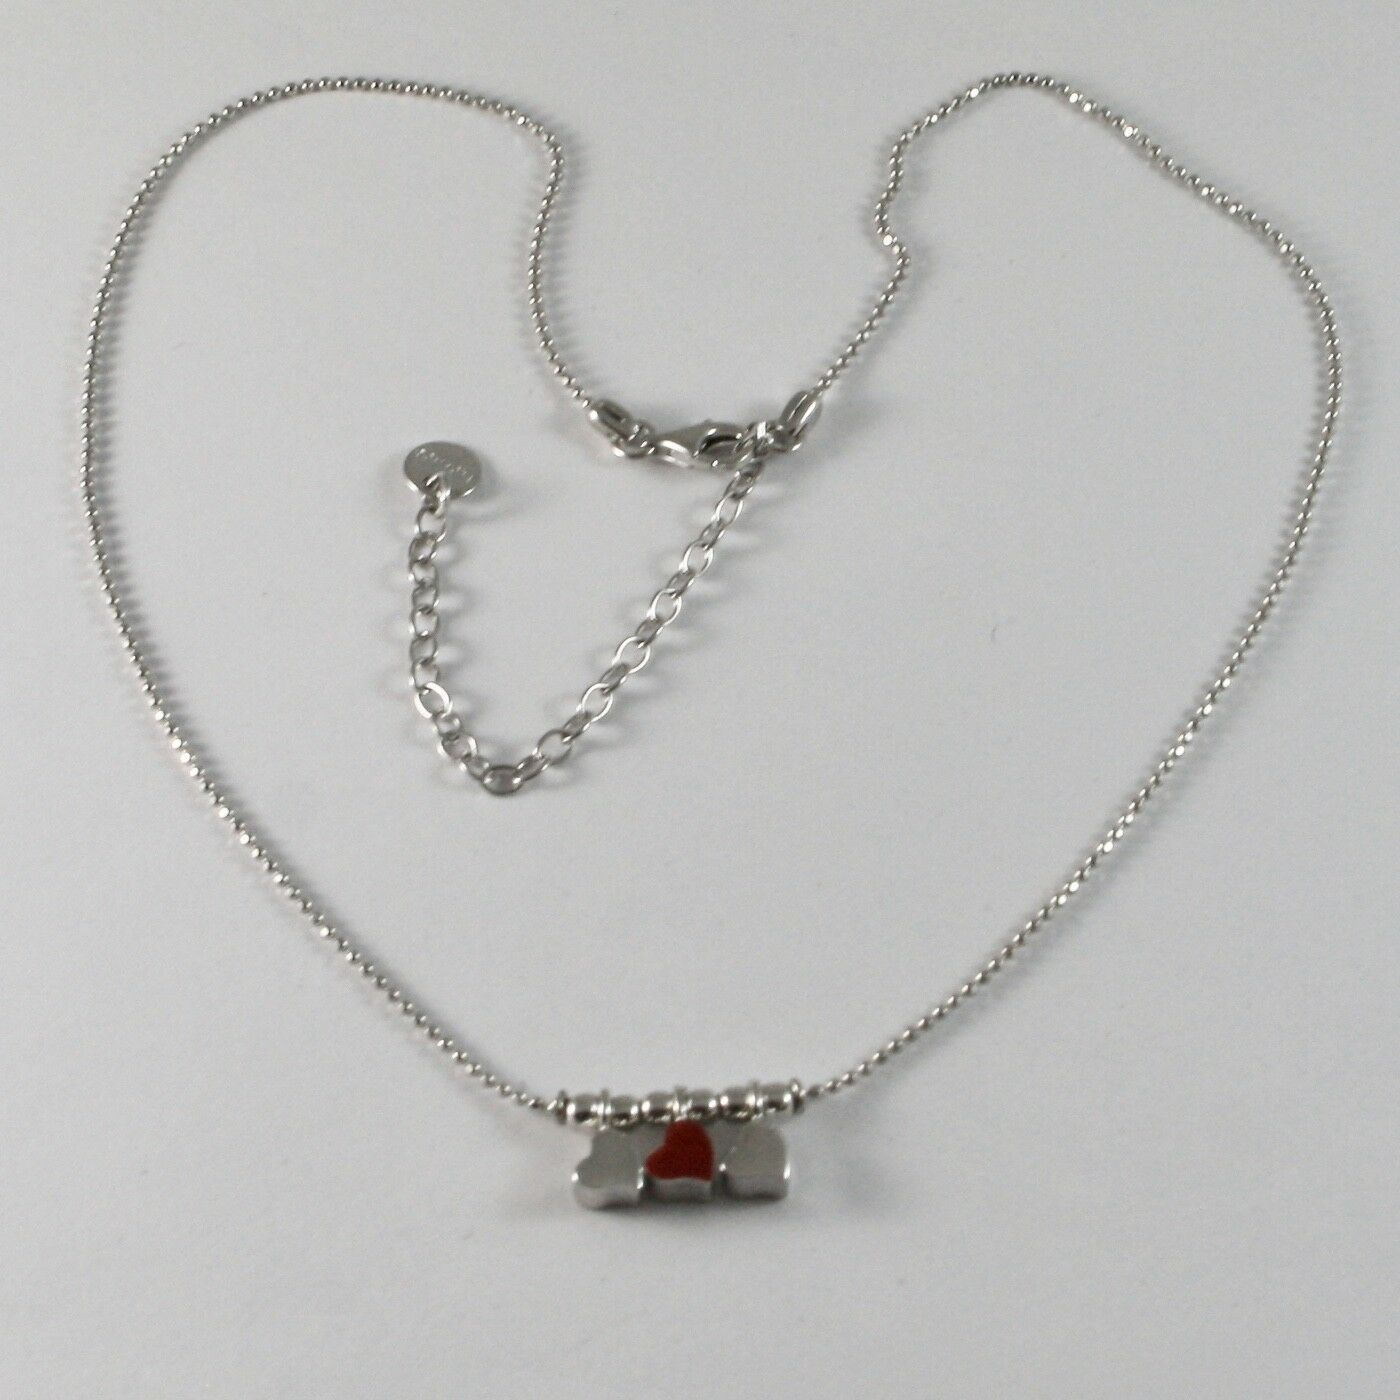 Silver Necklace 925 Jack&co with Hearts Transparencies and Enamelled Red JCN0642